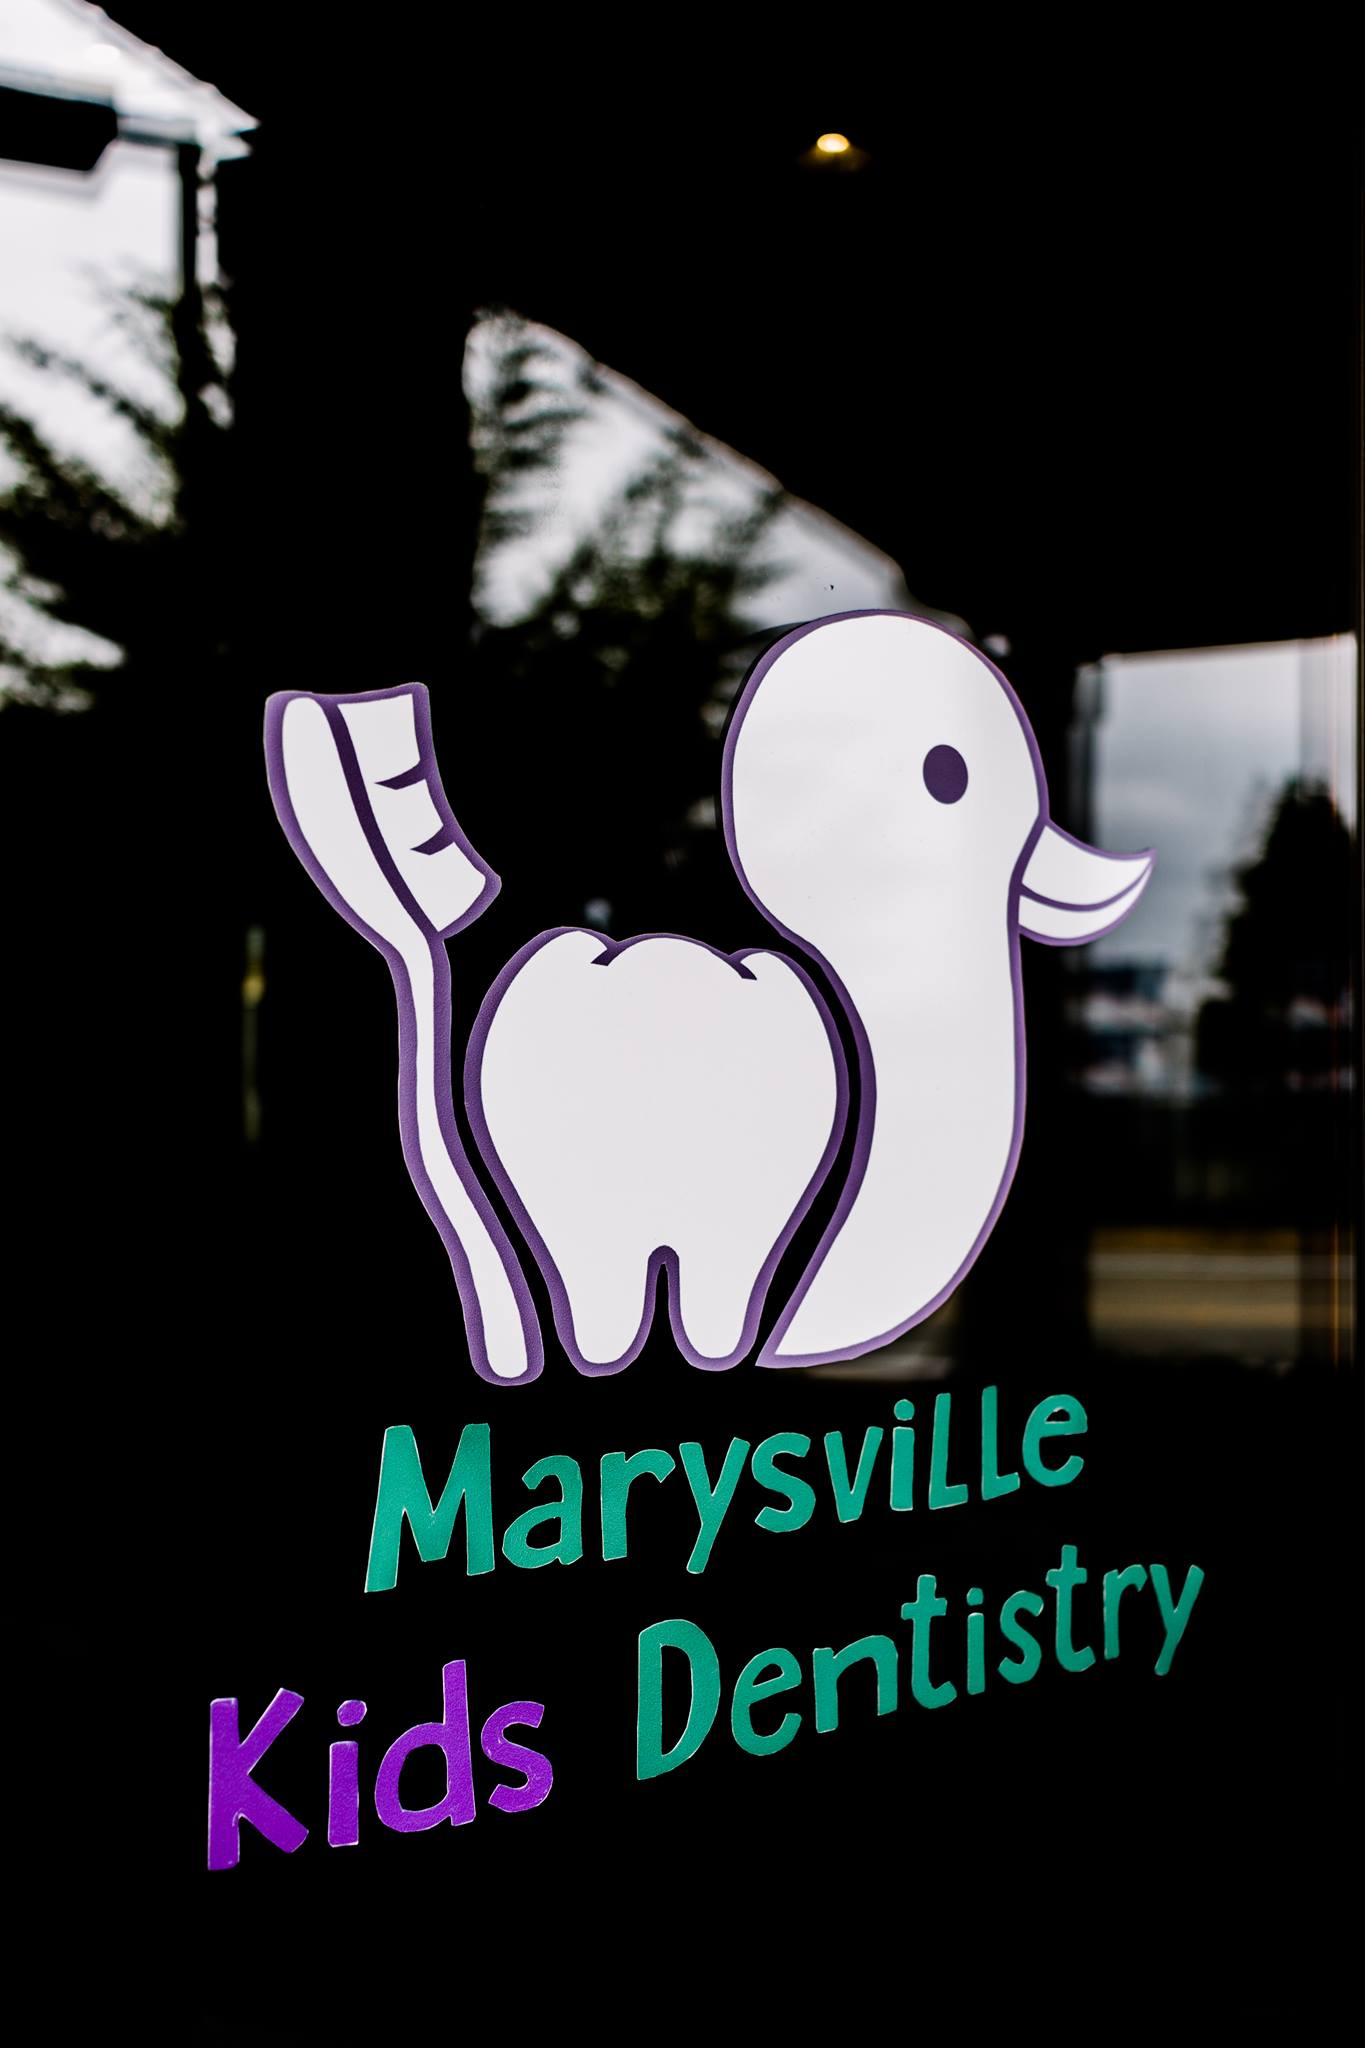 Marysville Kids Dentistry